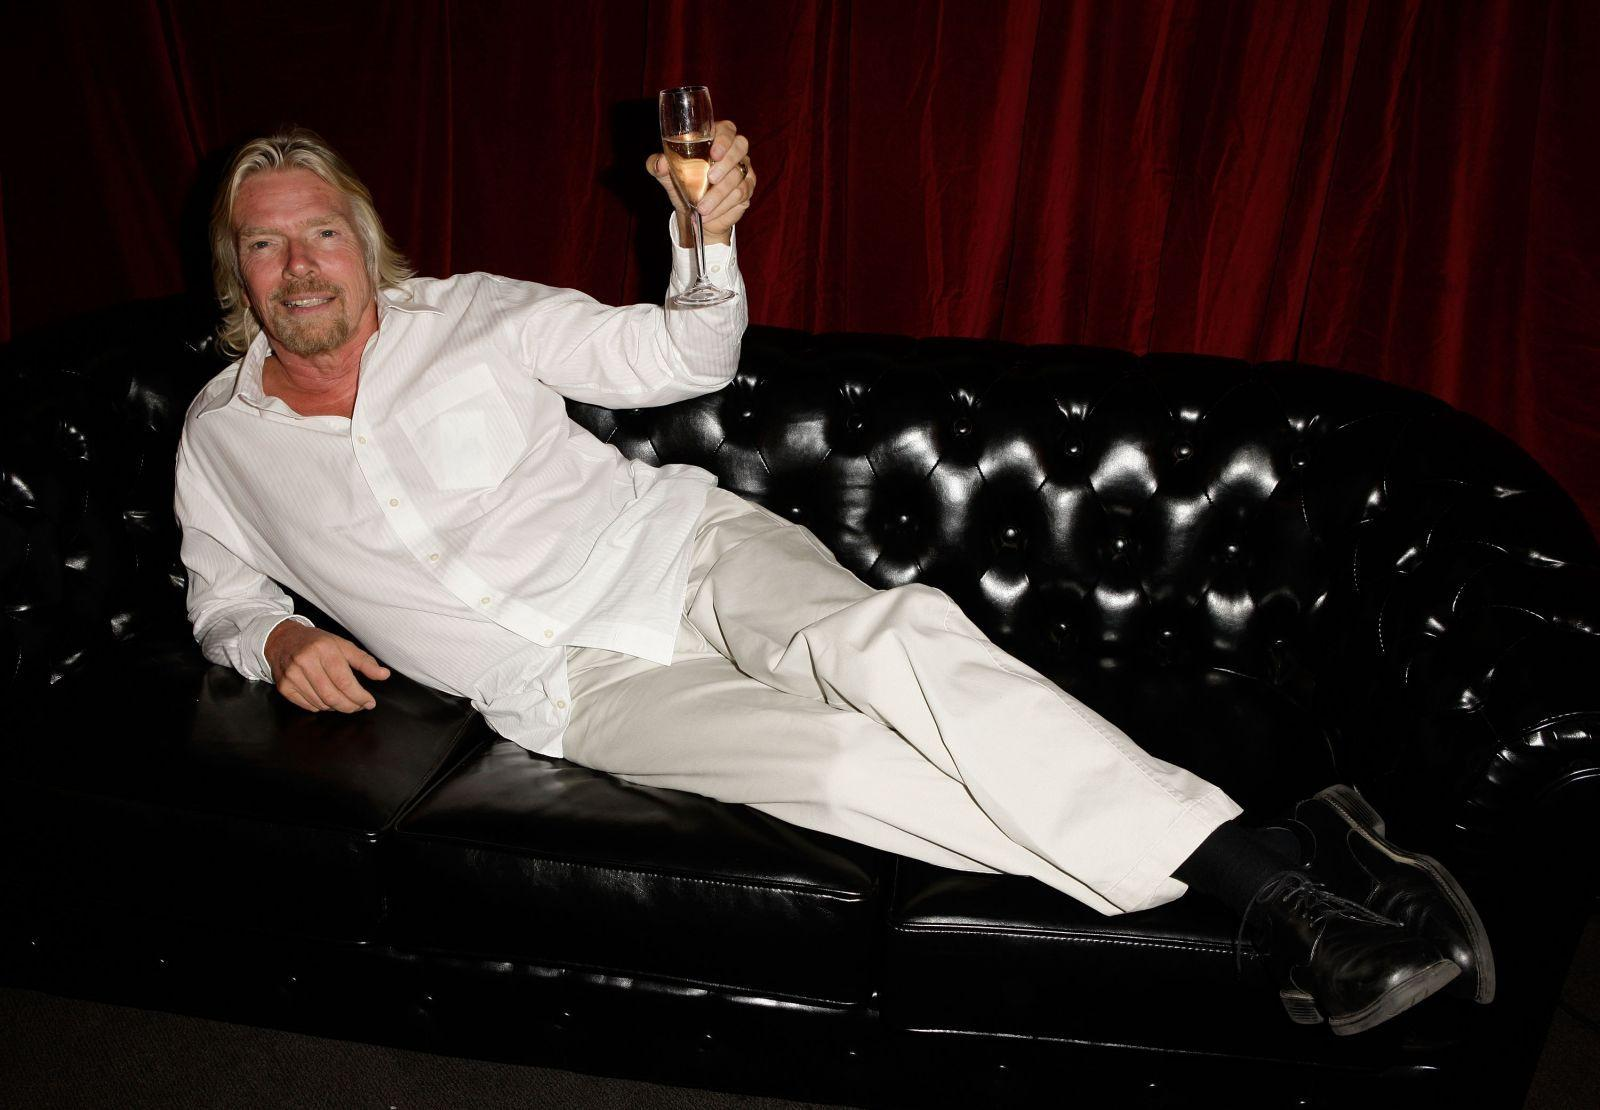 34 Photos of Richard Branson That Will Make You Go Hmm